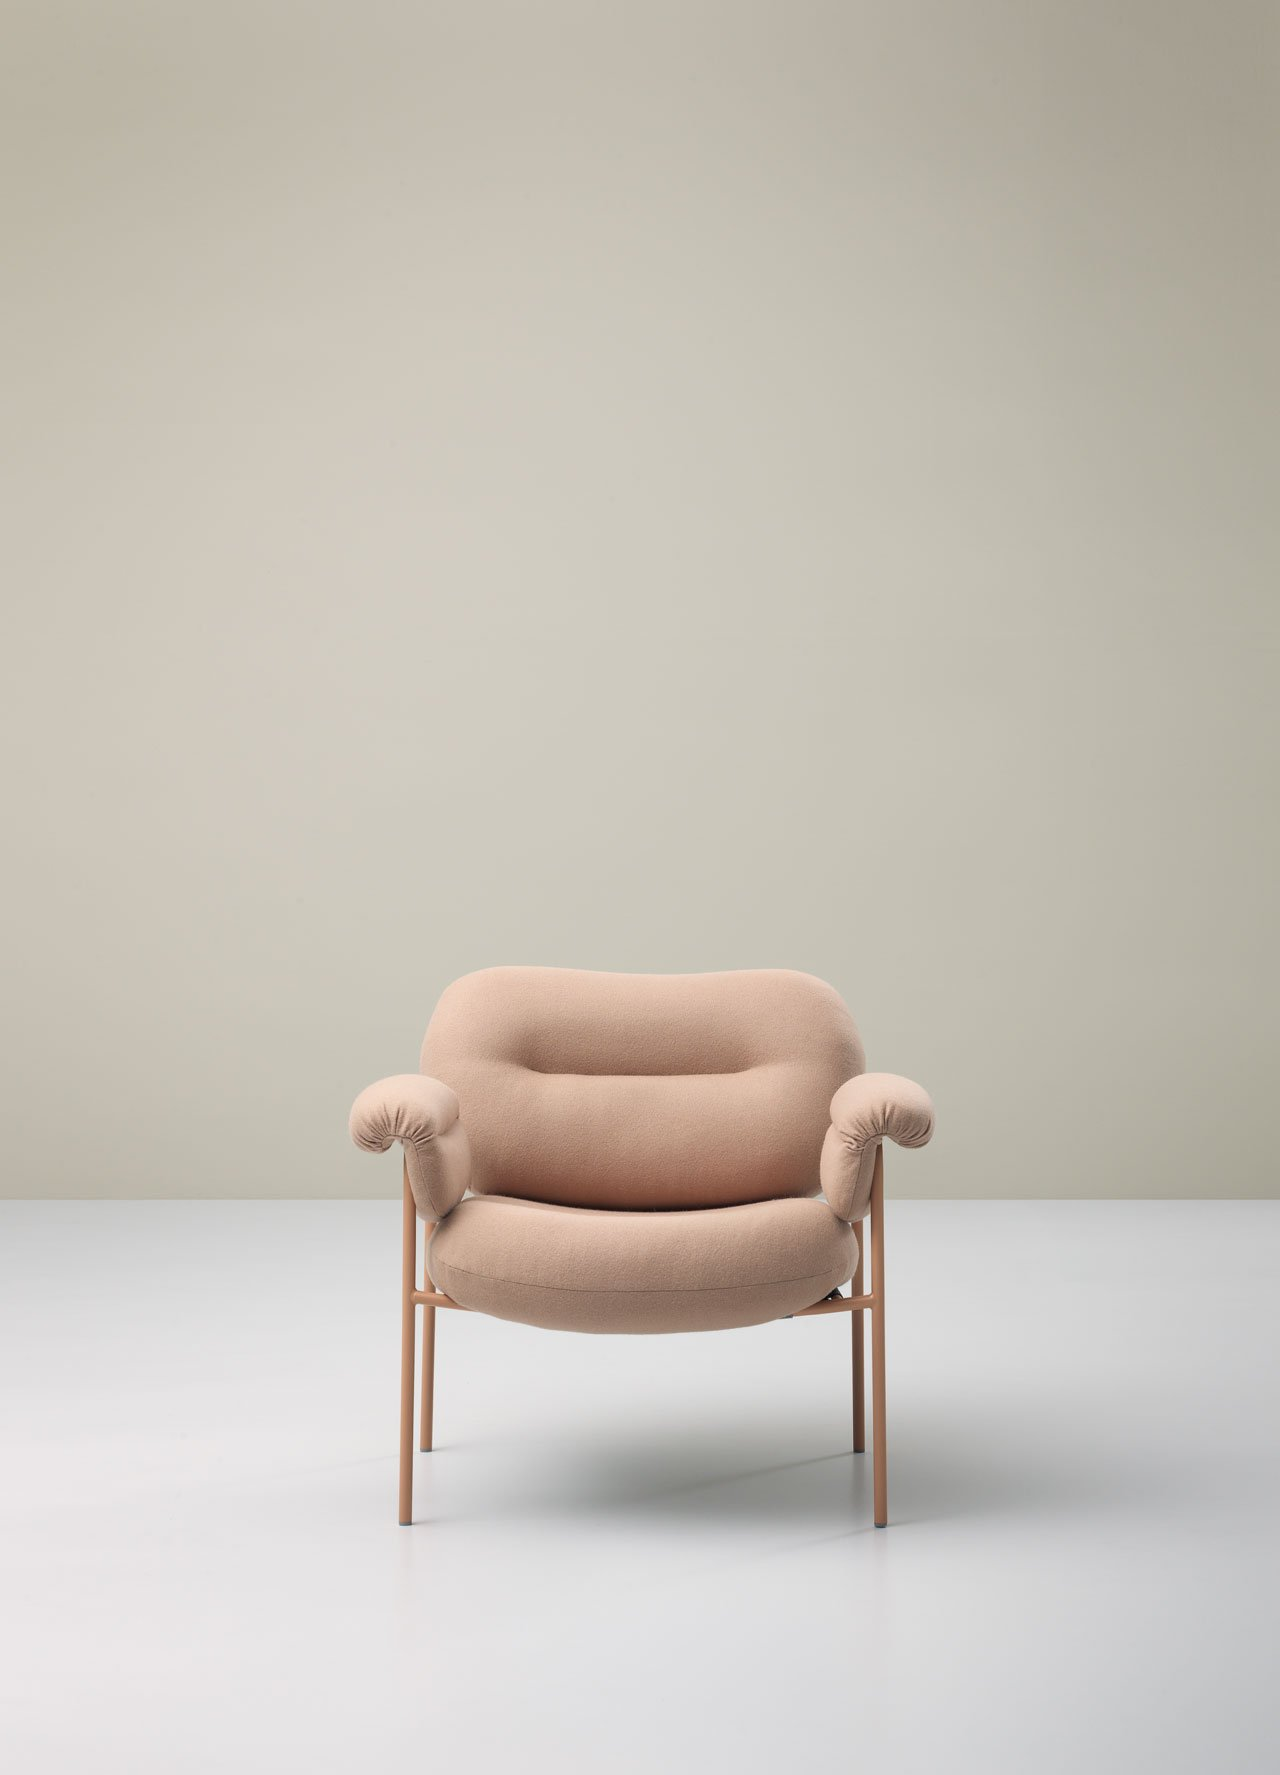 Bollo armchair by Fogia.